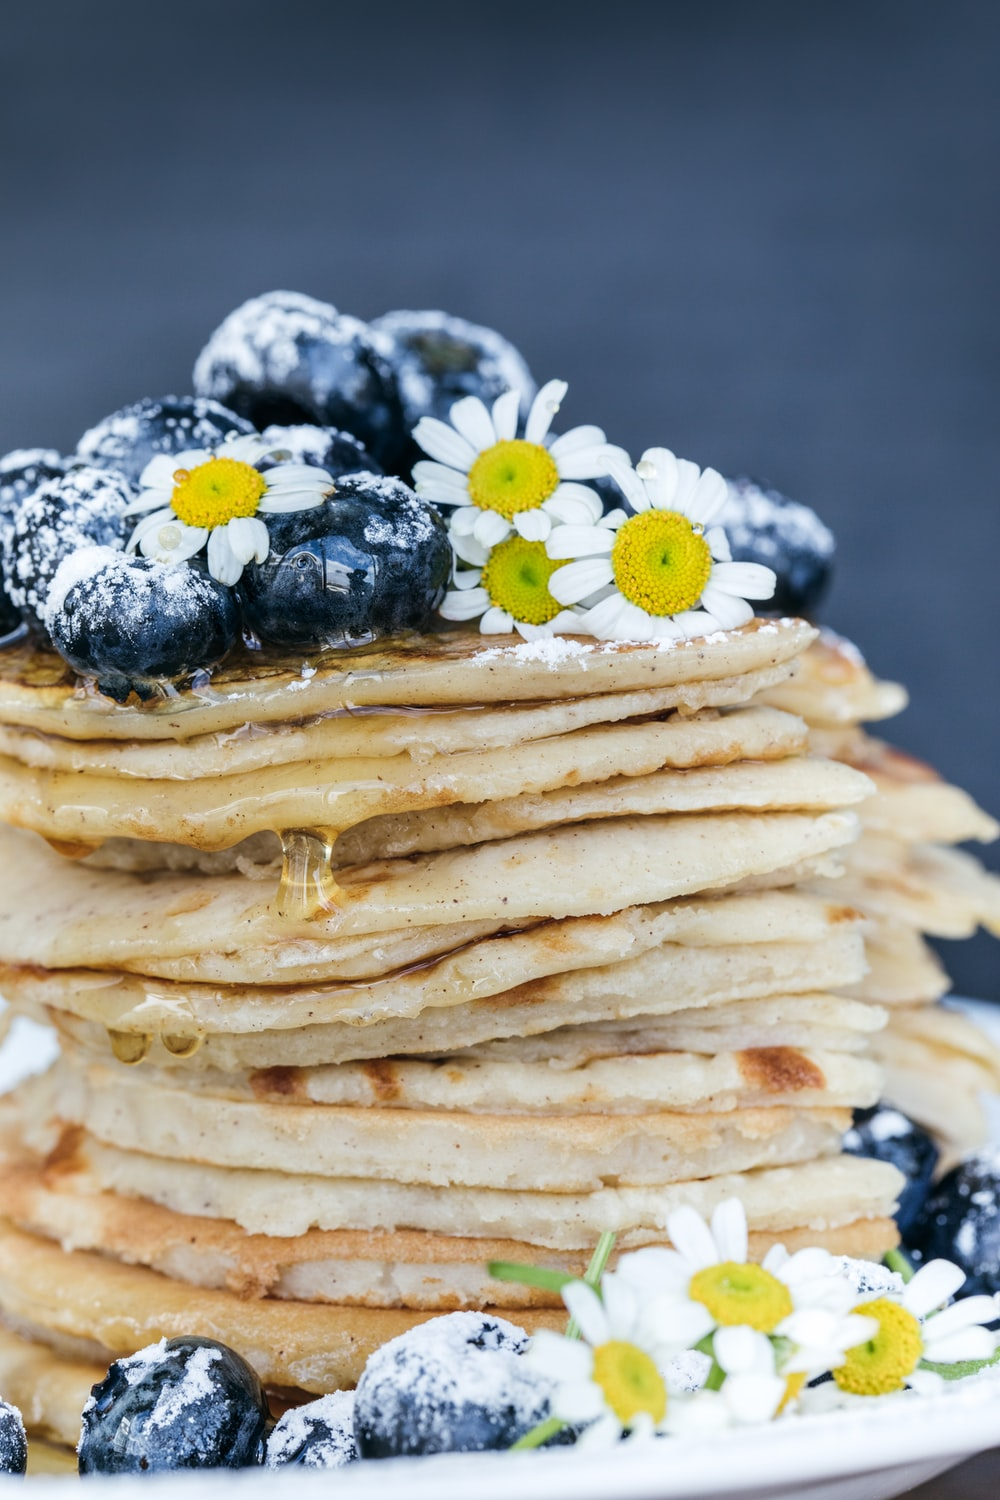 pancake with blueberry toppings